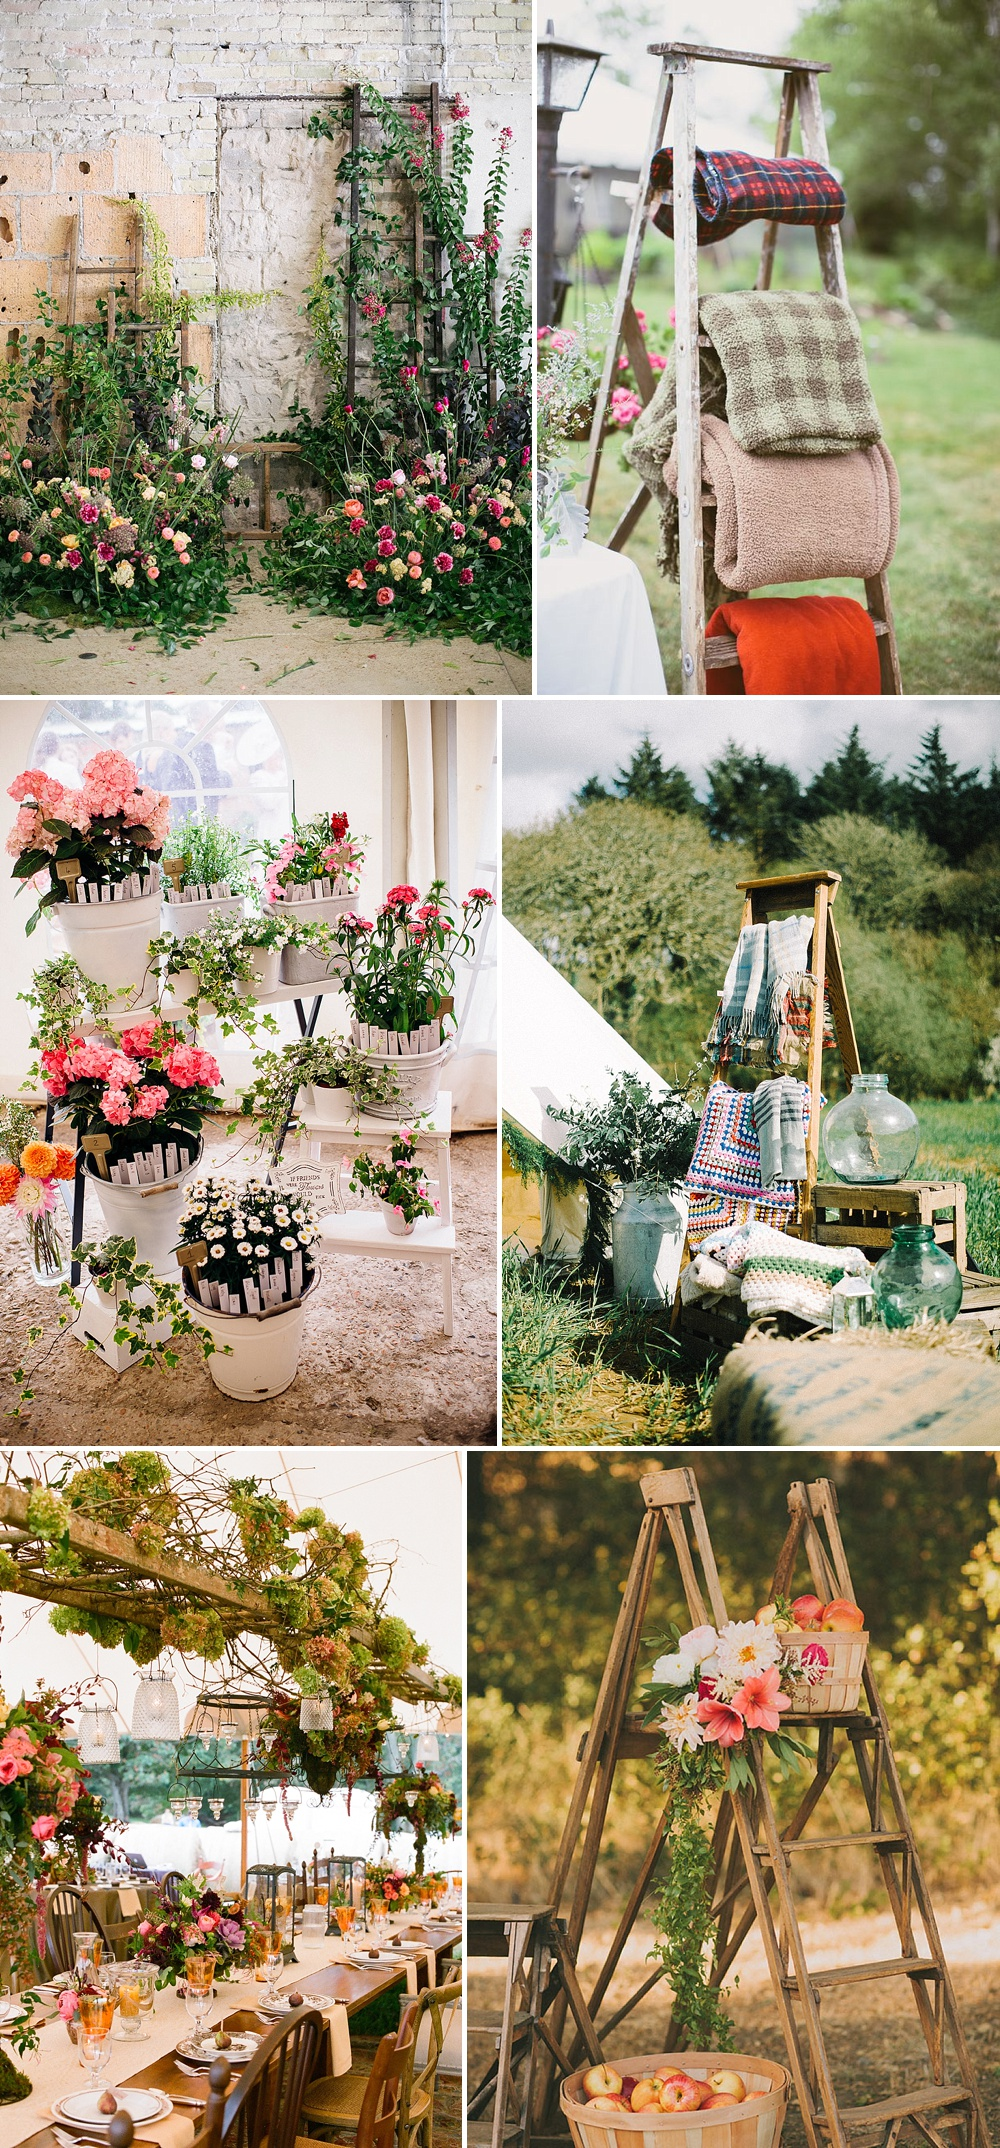 Wedding Decor & Styling Ladders With Bright Flowers